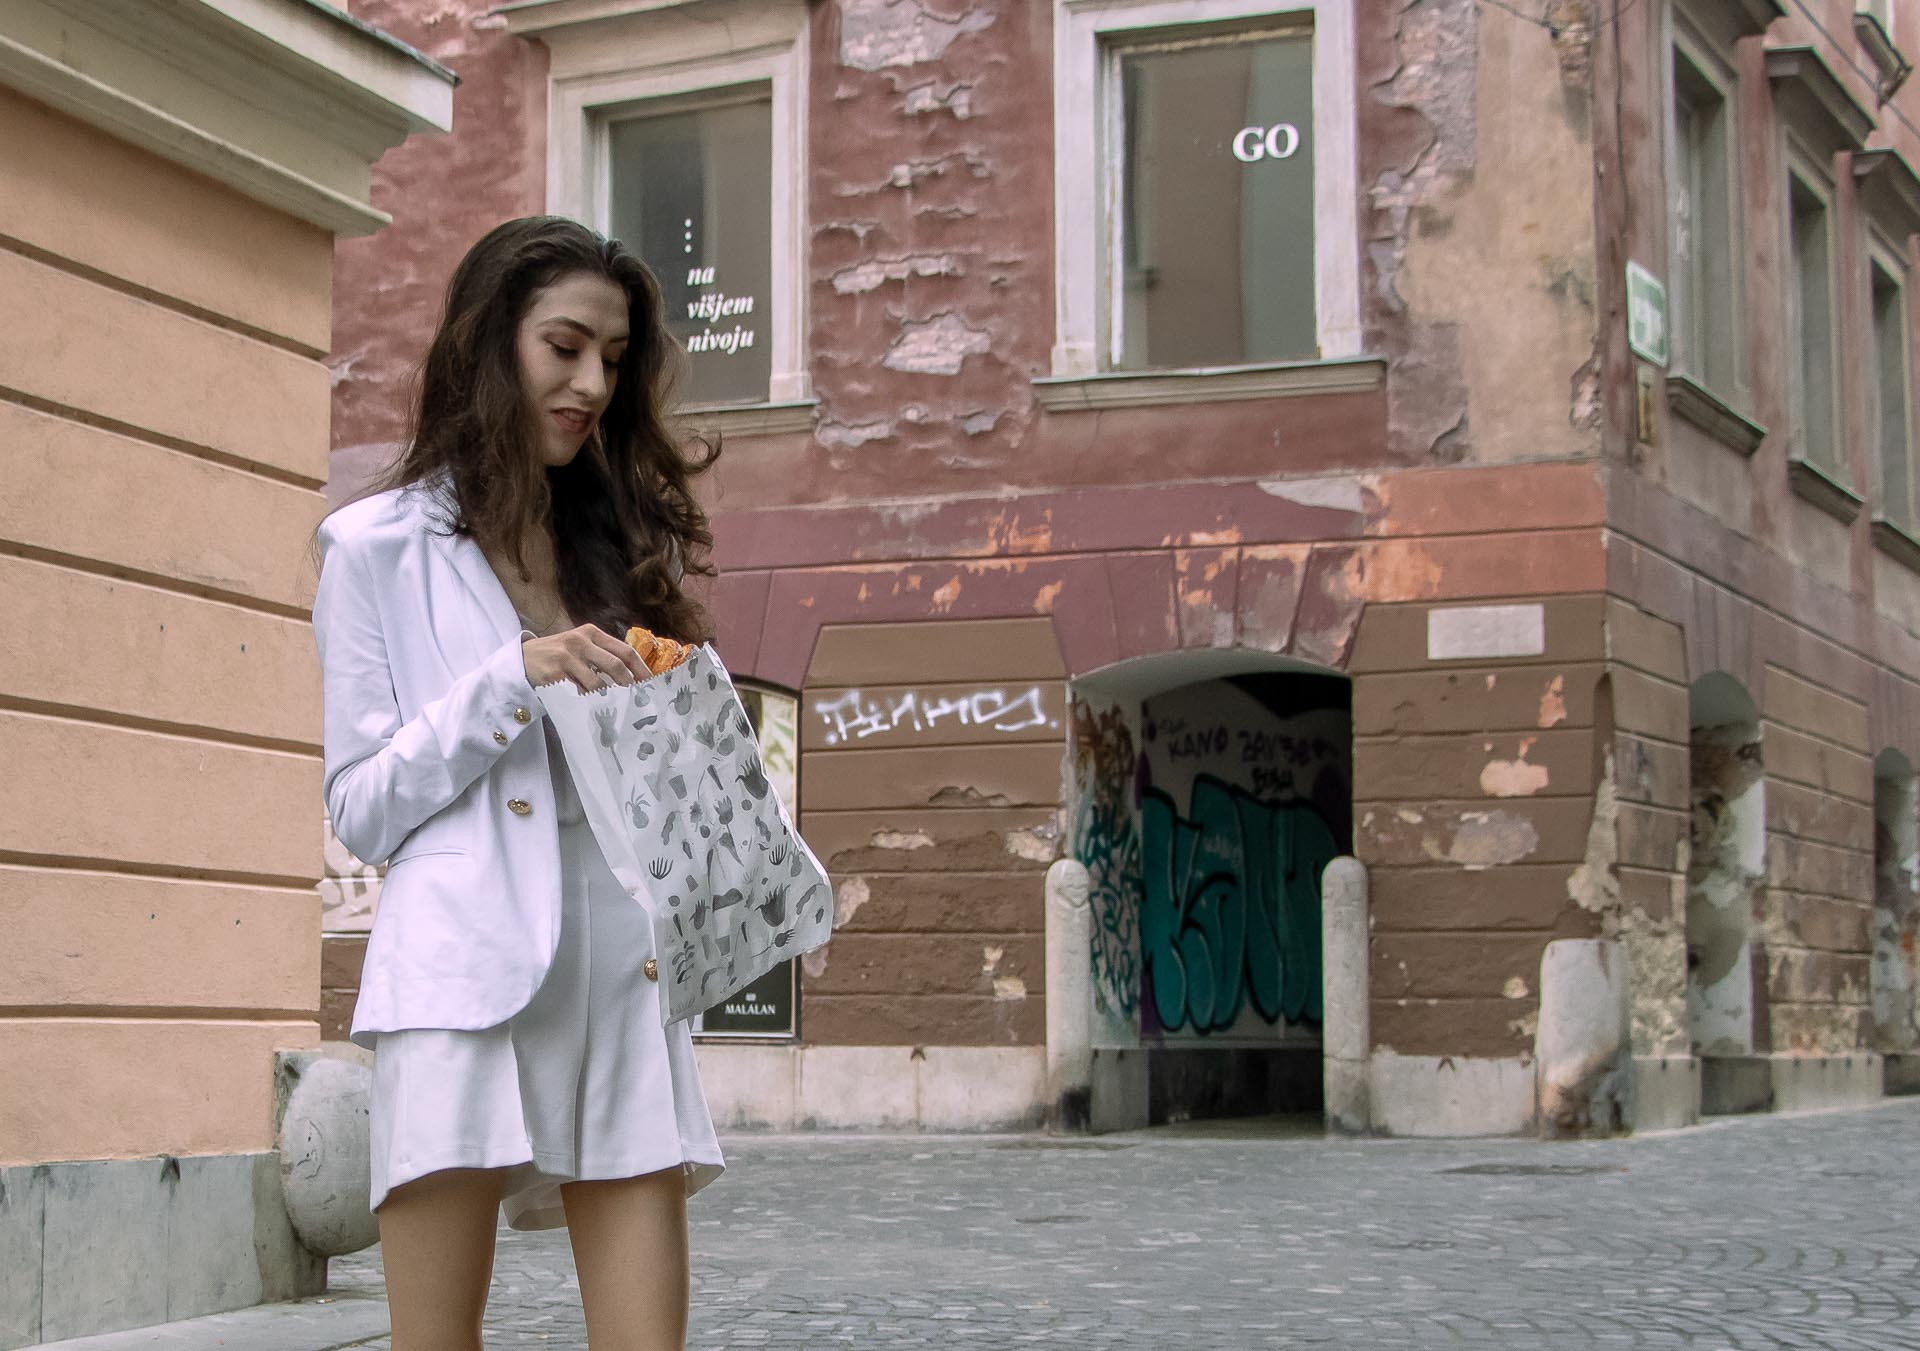 Beautiful Slovenian Fashion Blogger Veronika Lipar of Brunette from Wall wearing all in white suit, white blazer, white tailored shorts, shoulder bag while eating a croissant on the street in the morning after night out clubbing